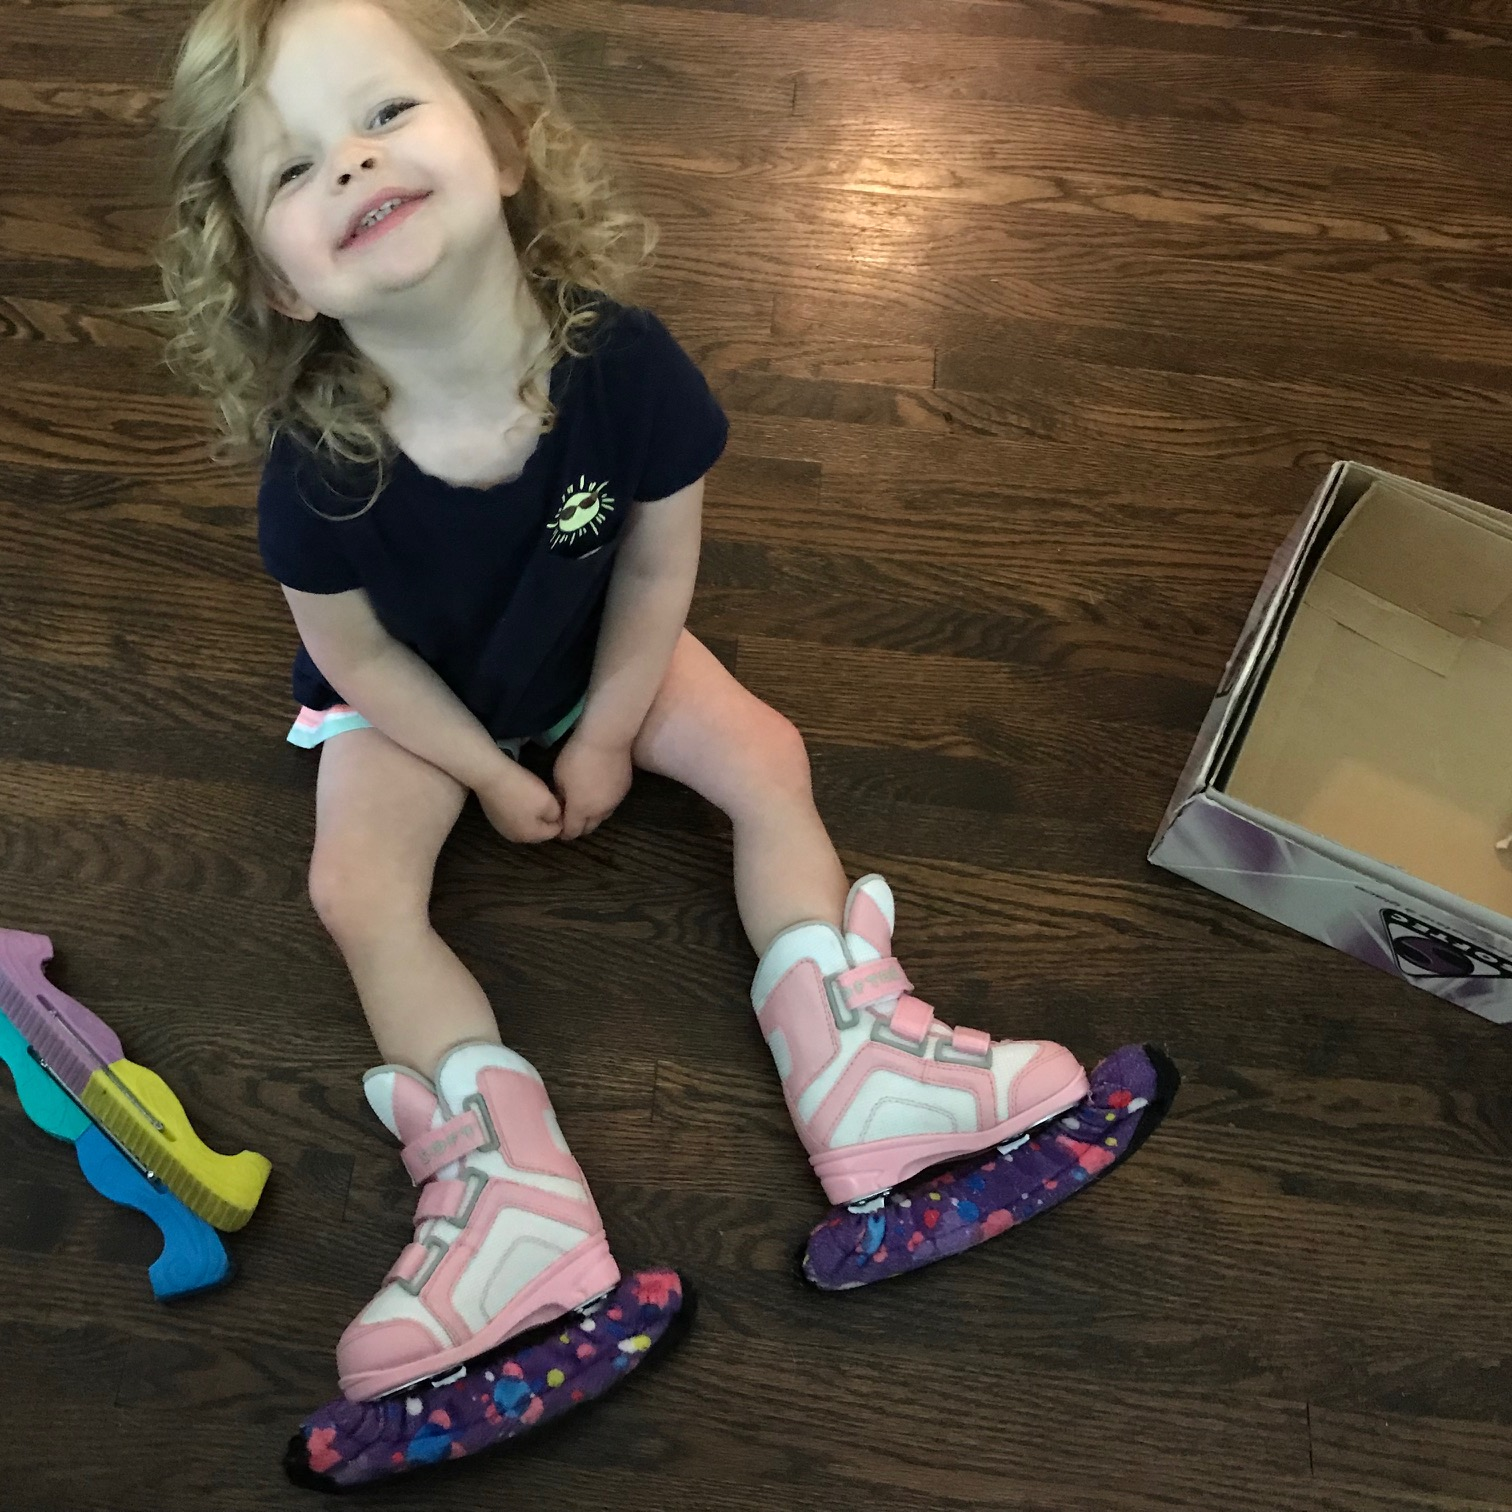 TinyTot is all smiles when she tries on her new skates